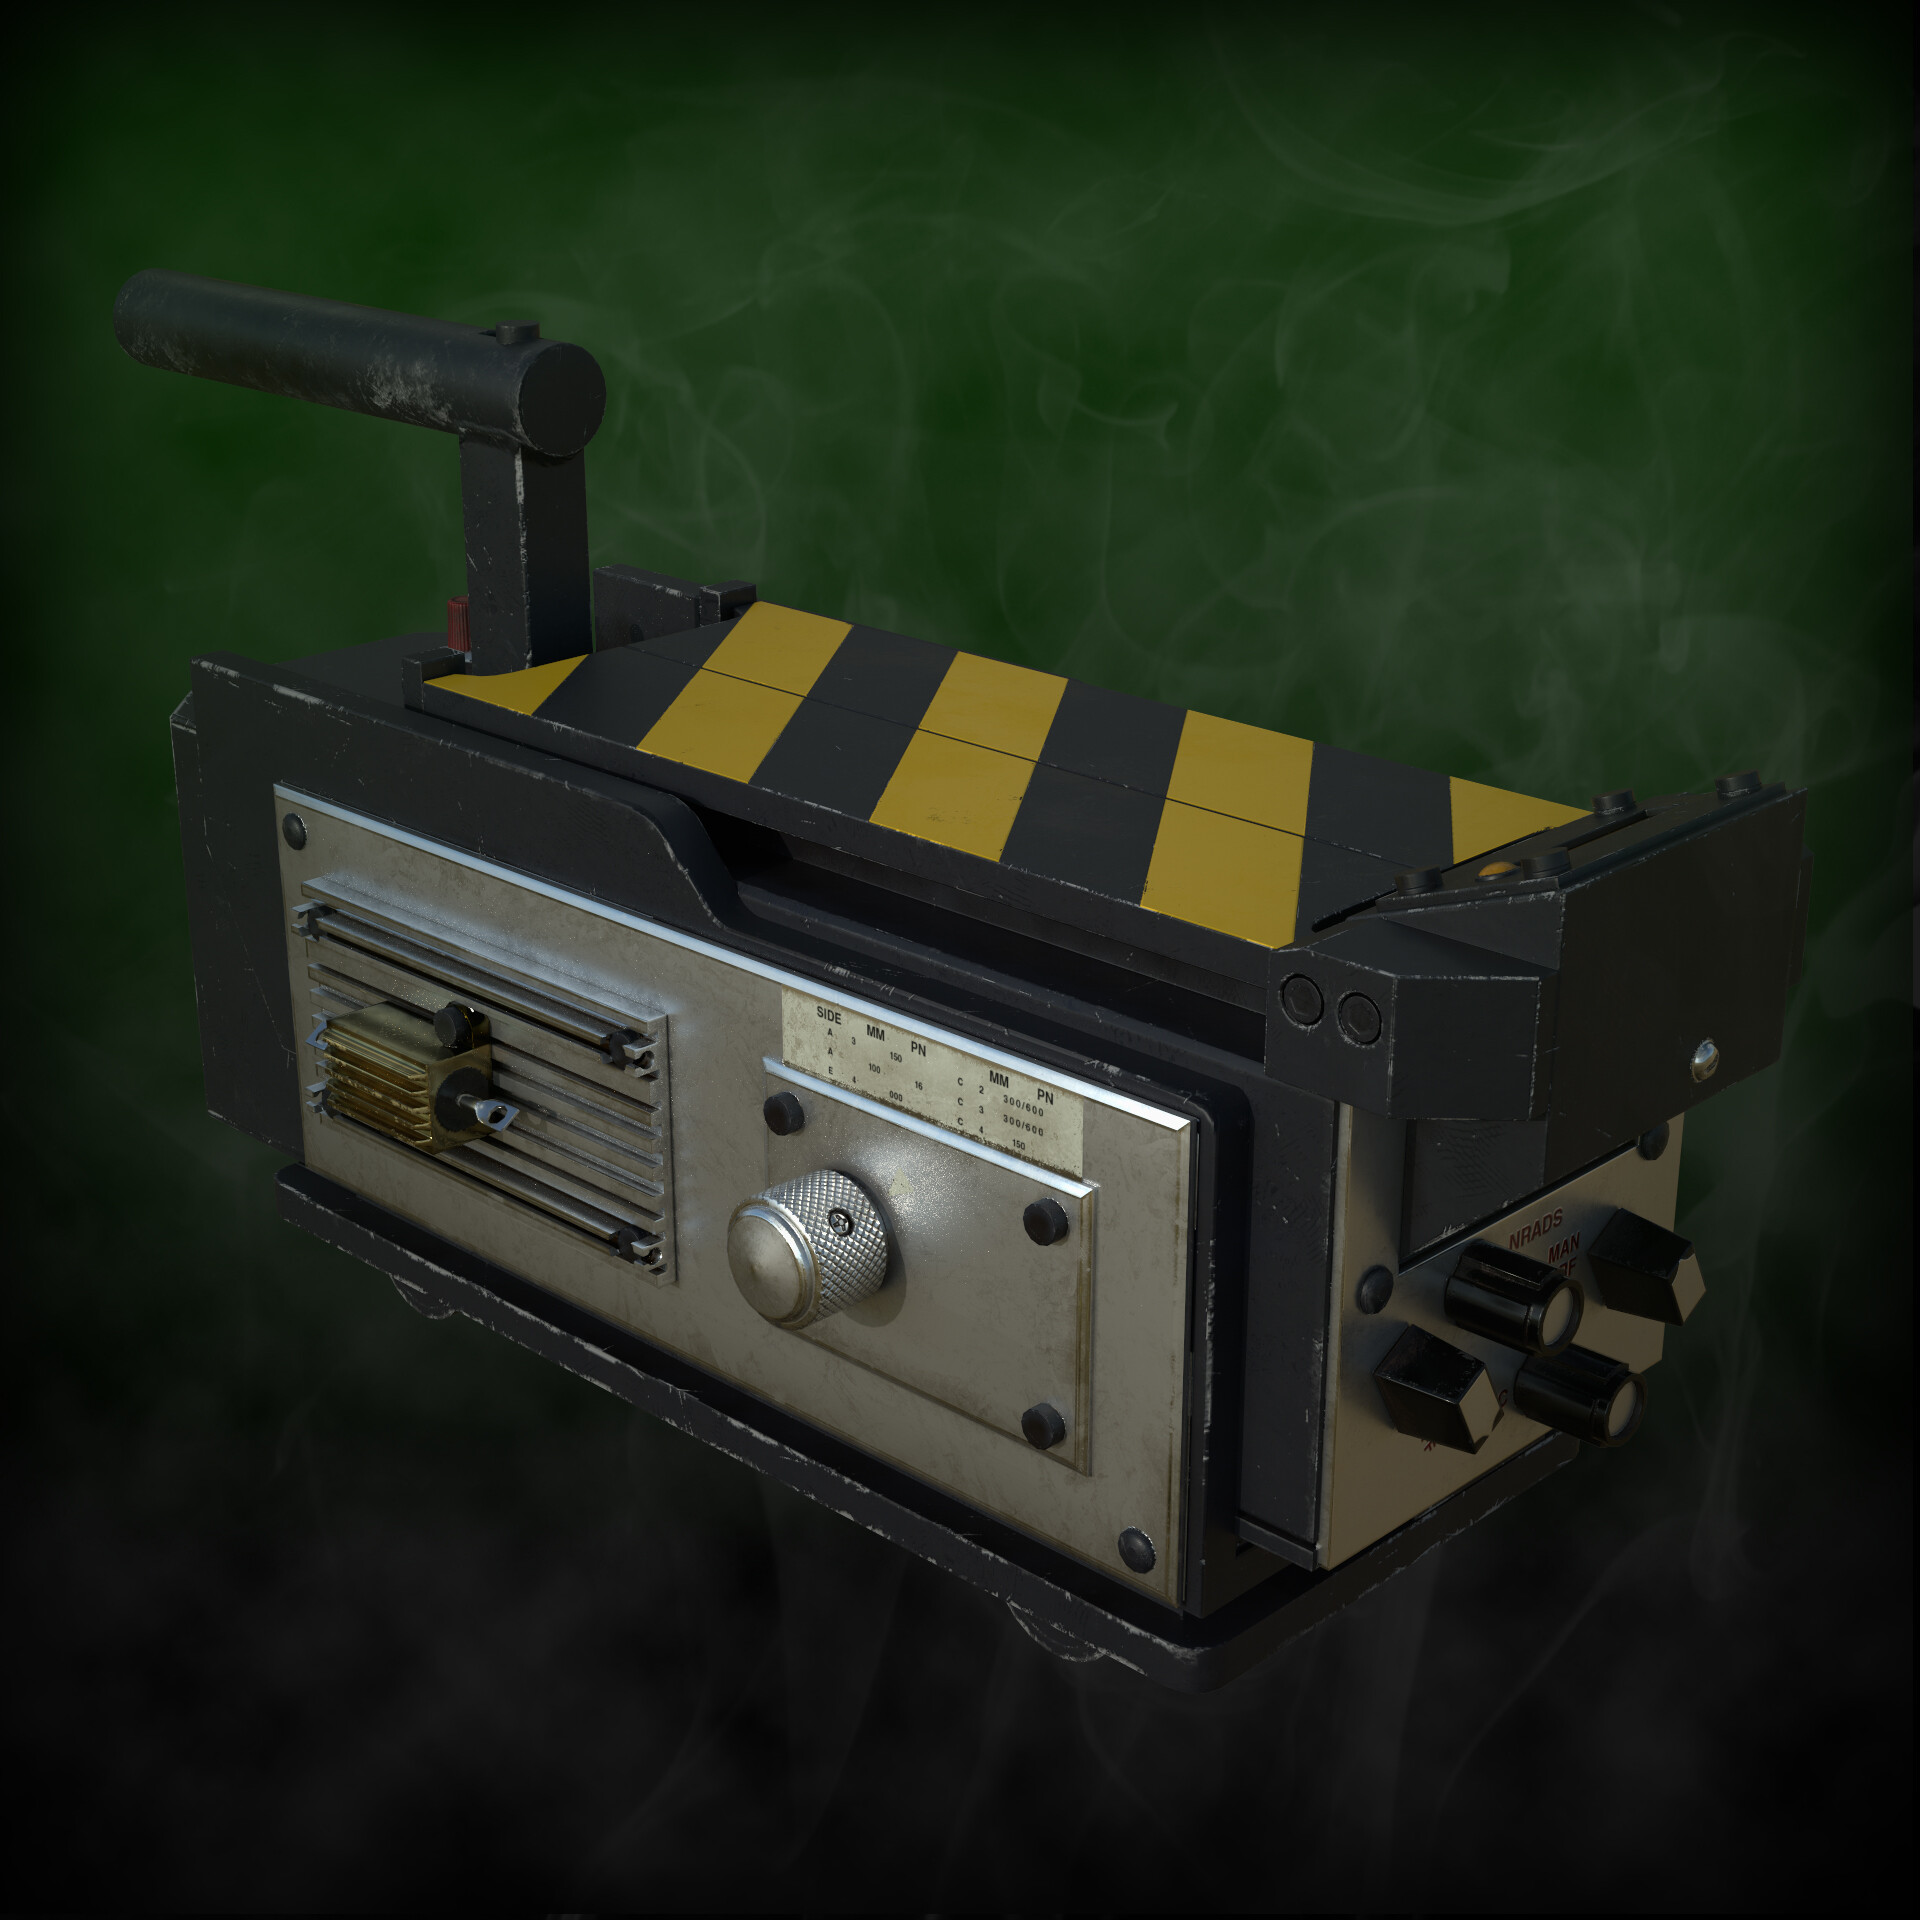 Thomas marrone ghostbusters trap combined 2019 07 14 05